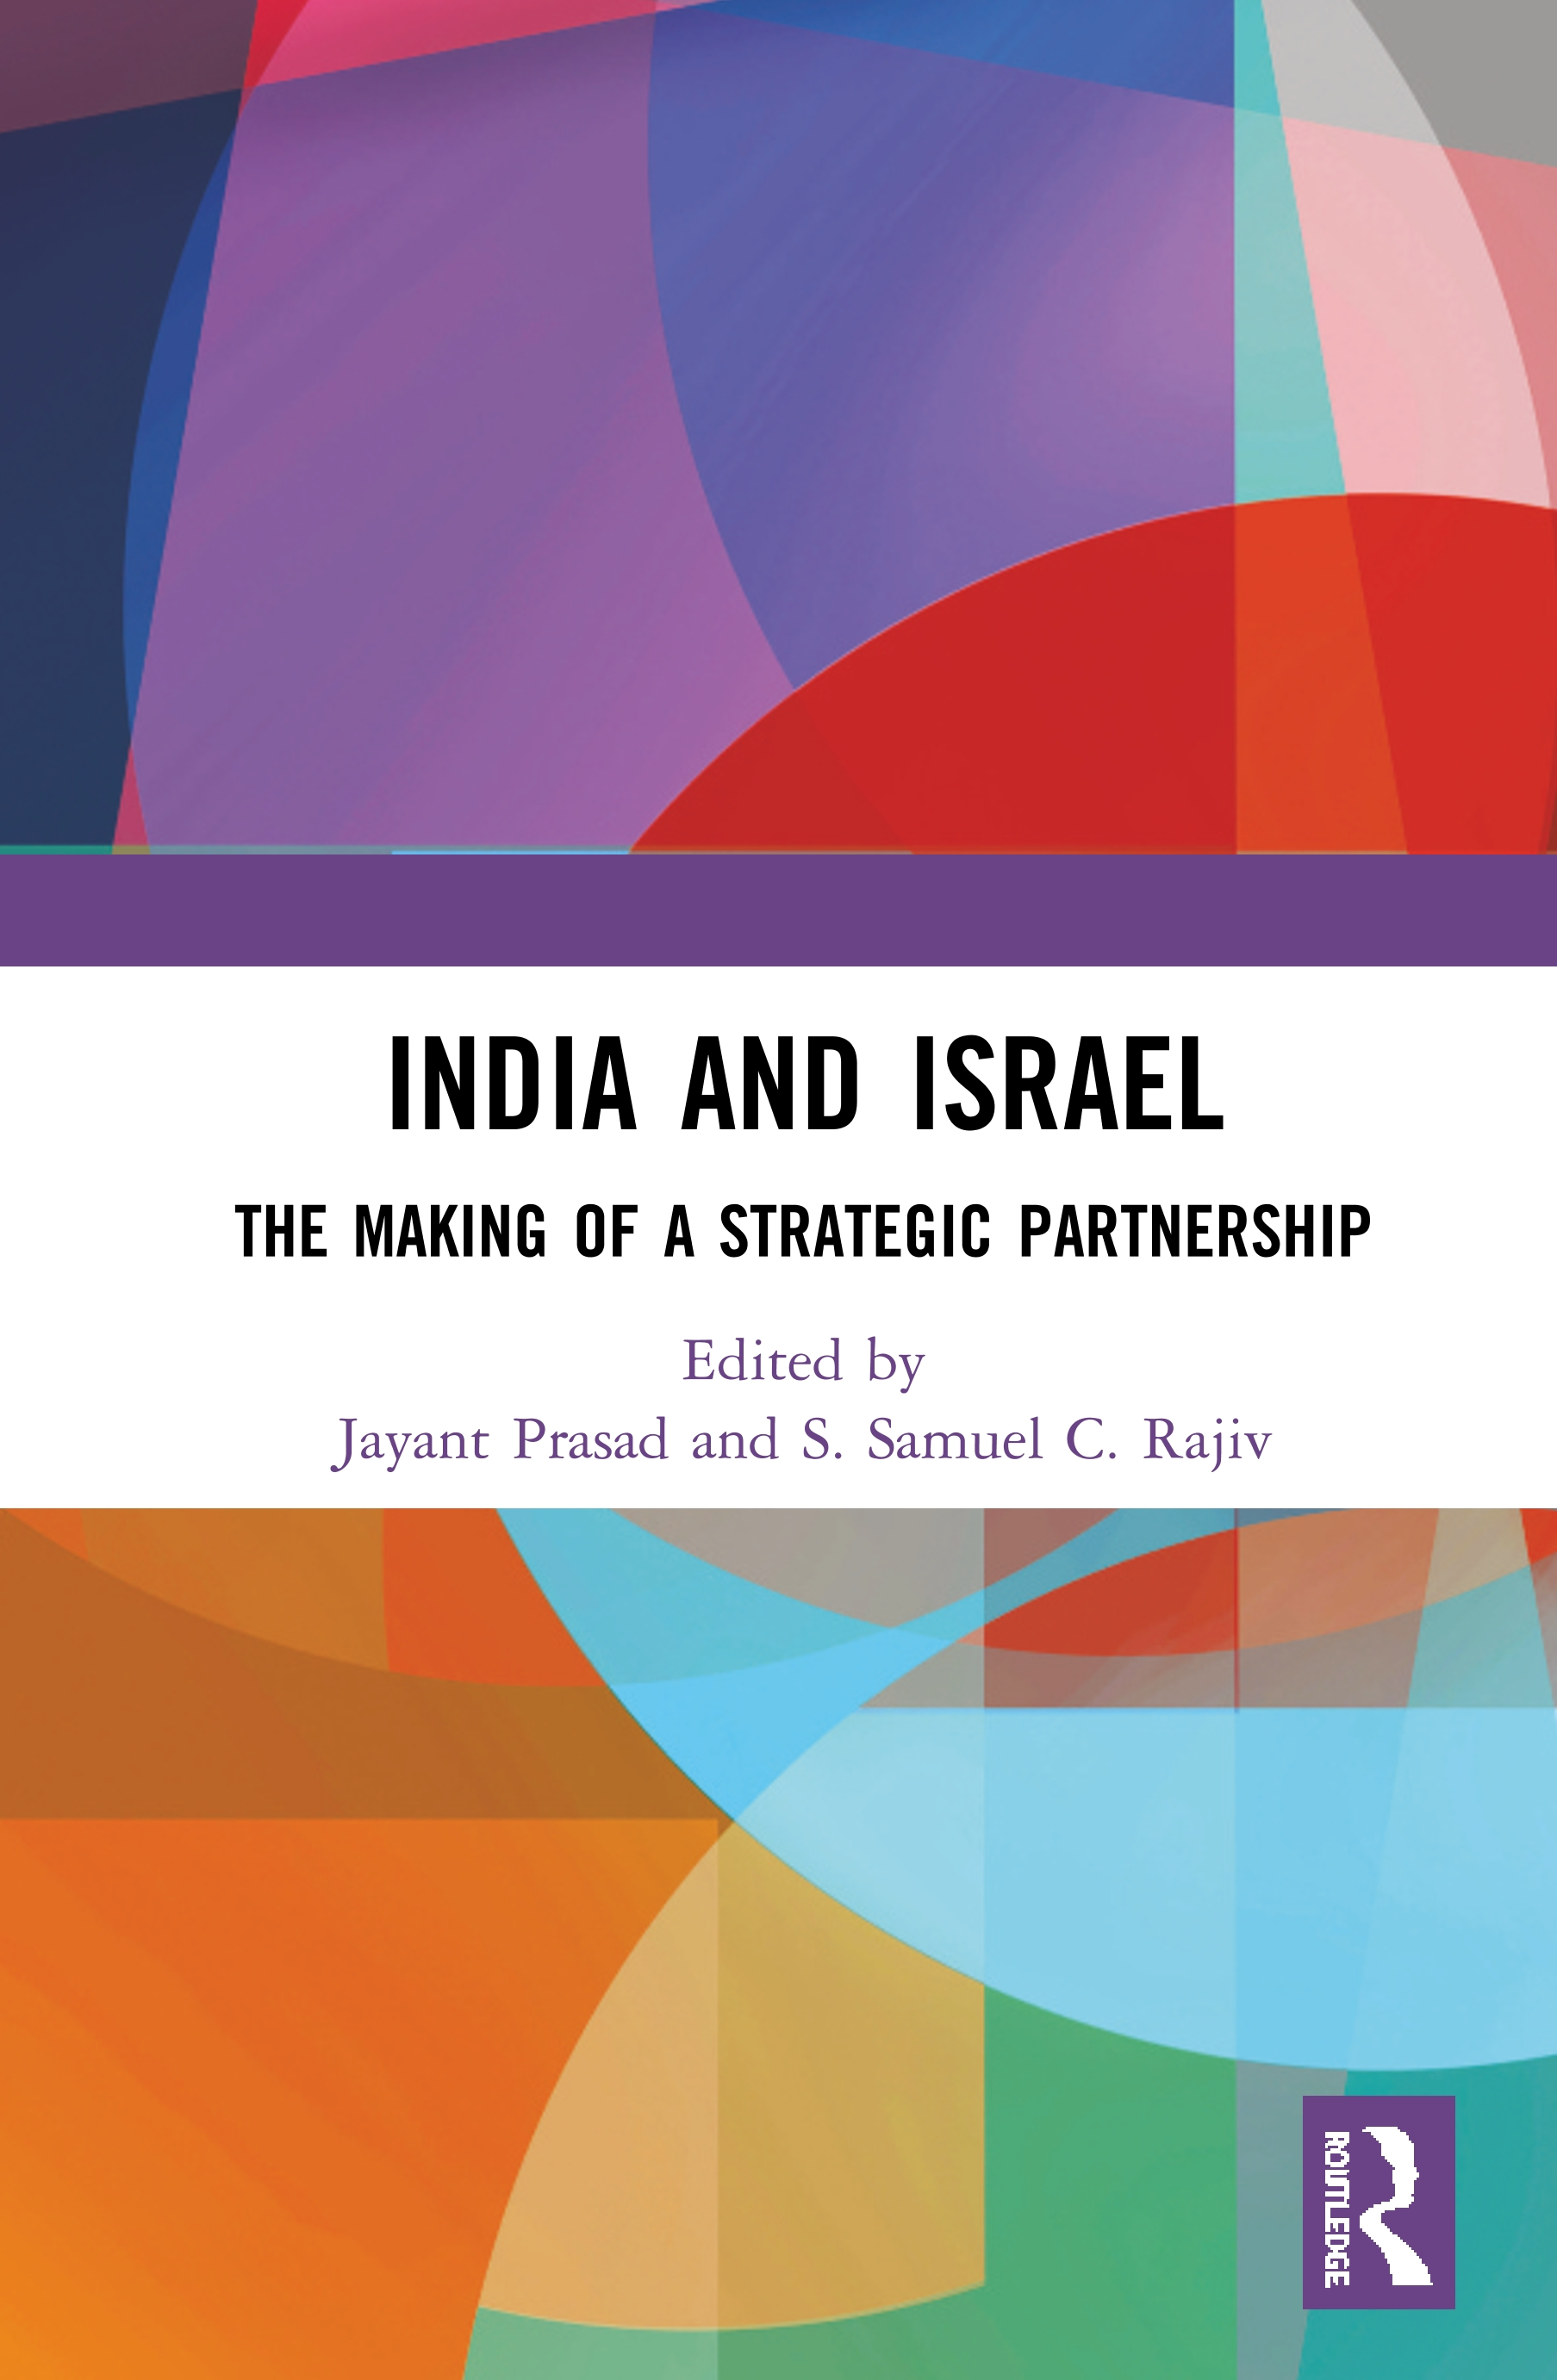 India and Israel: The Making of a Strategic Partnership book cover